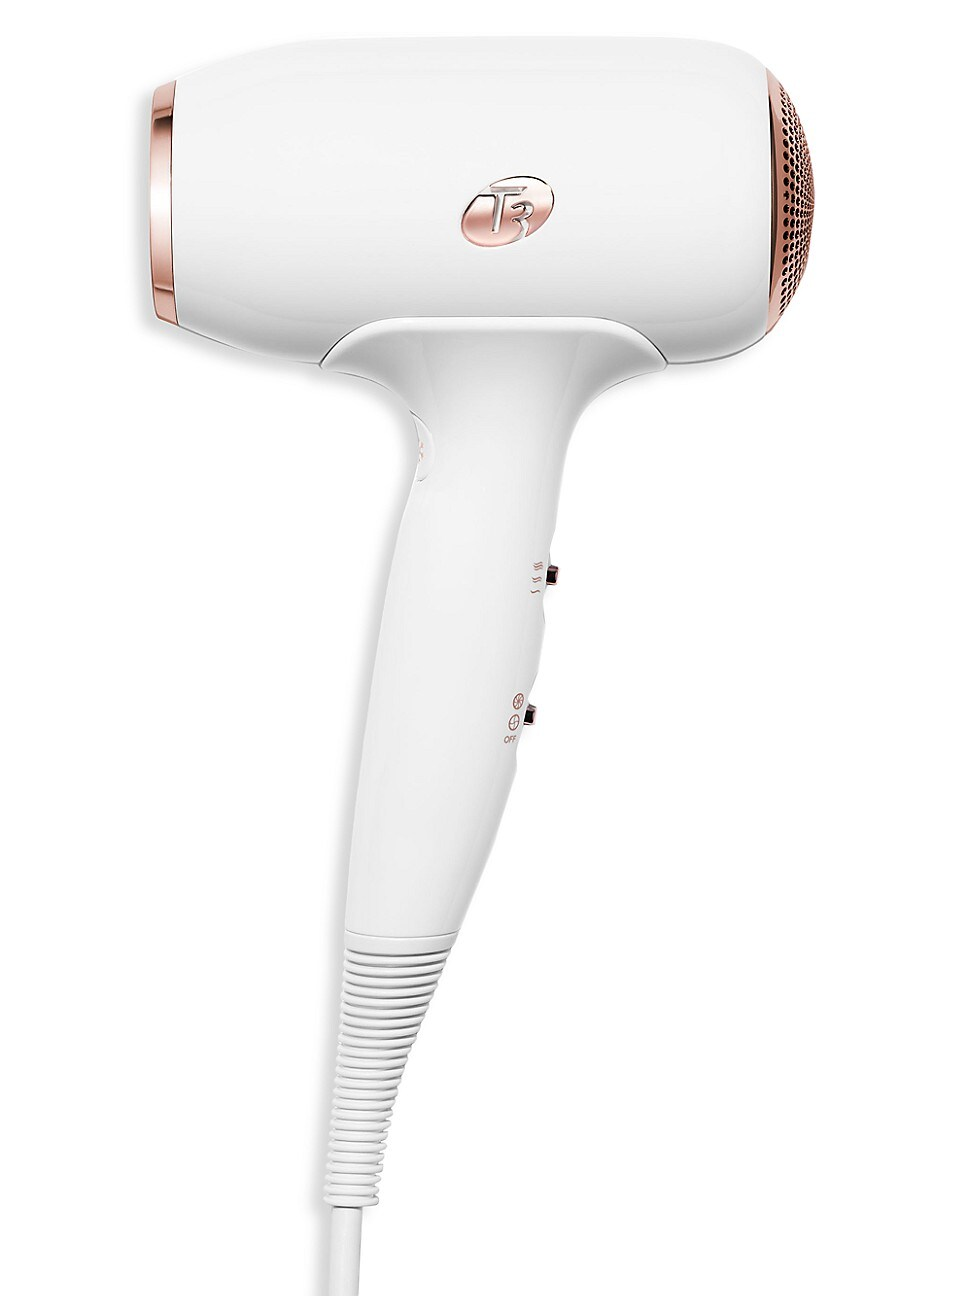 T3 Electronic devices FIT COMPACT HAIR DRYER